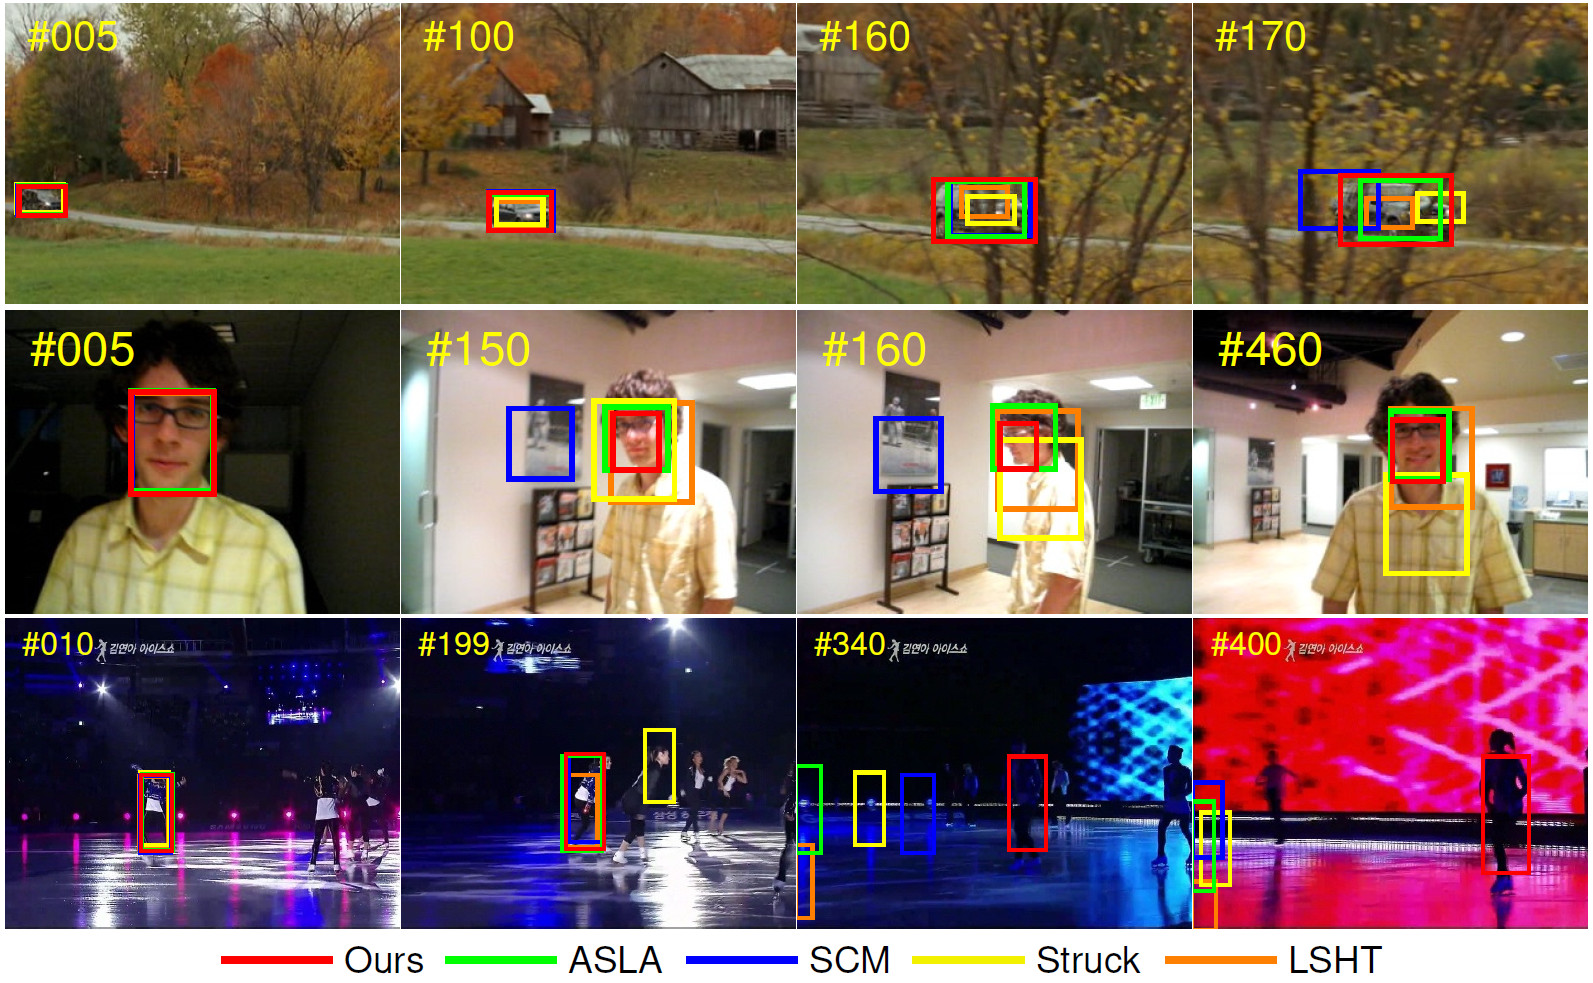 Accurate Scale Estimation For Visual Tracking